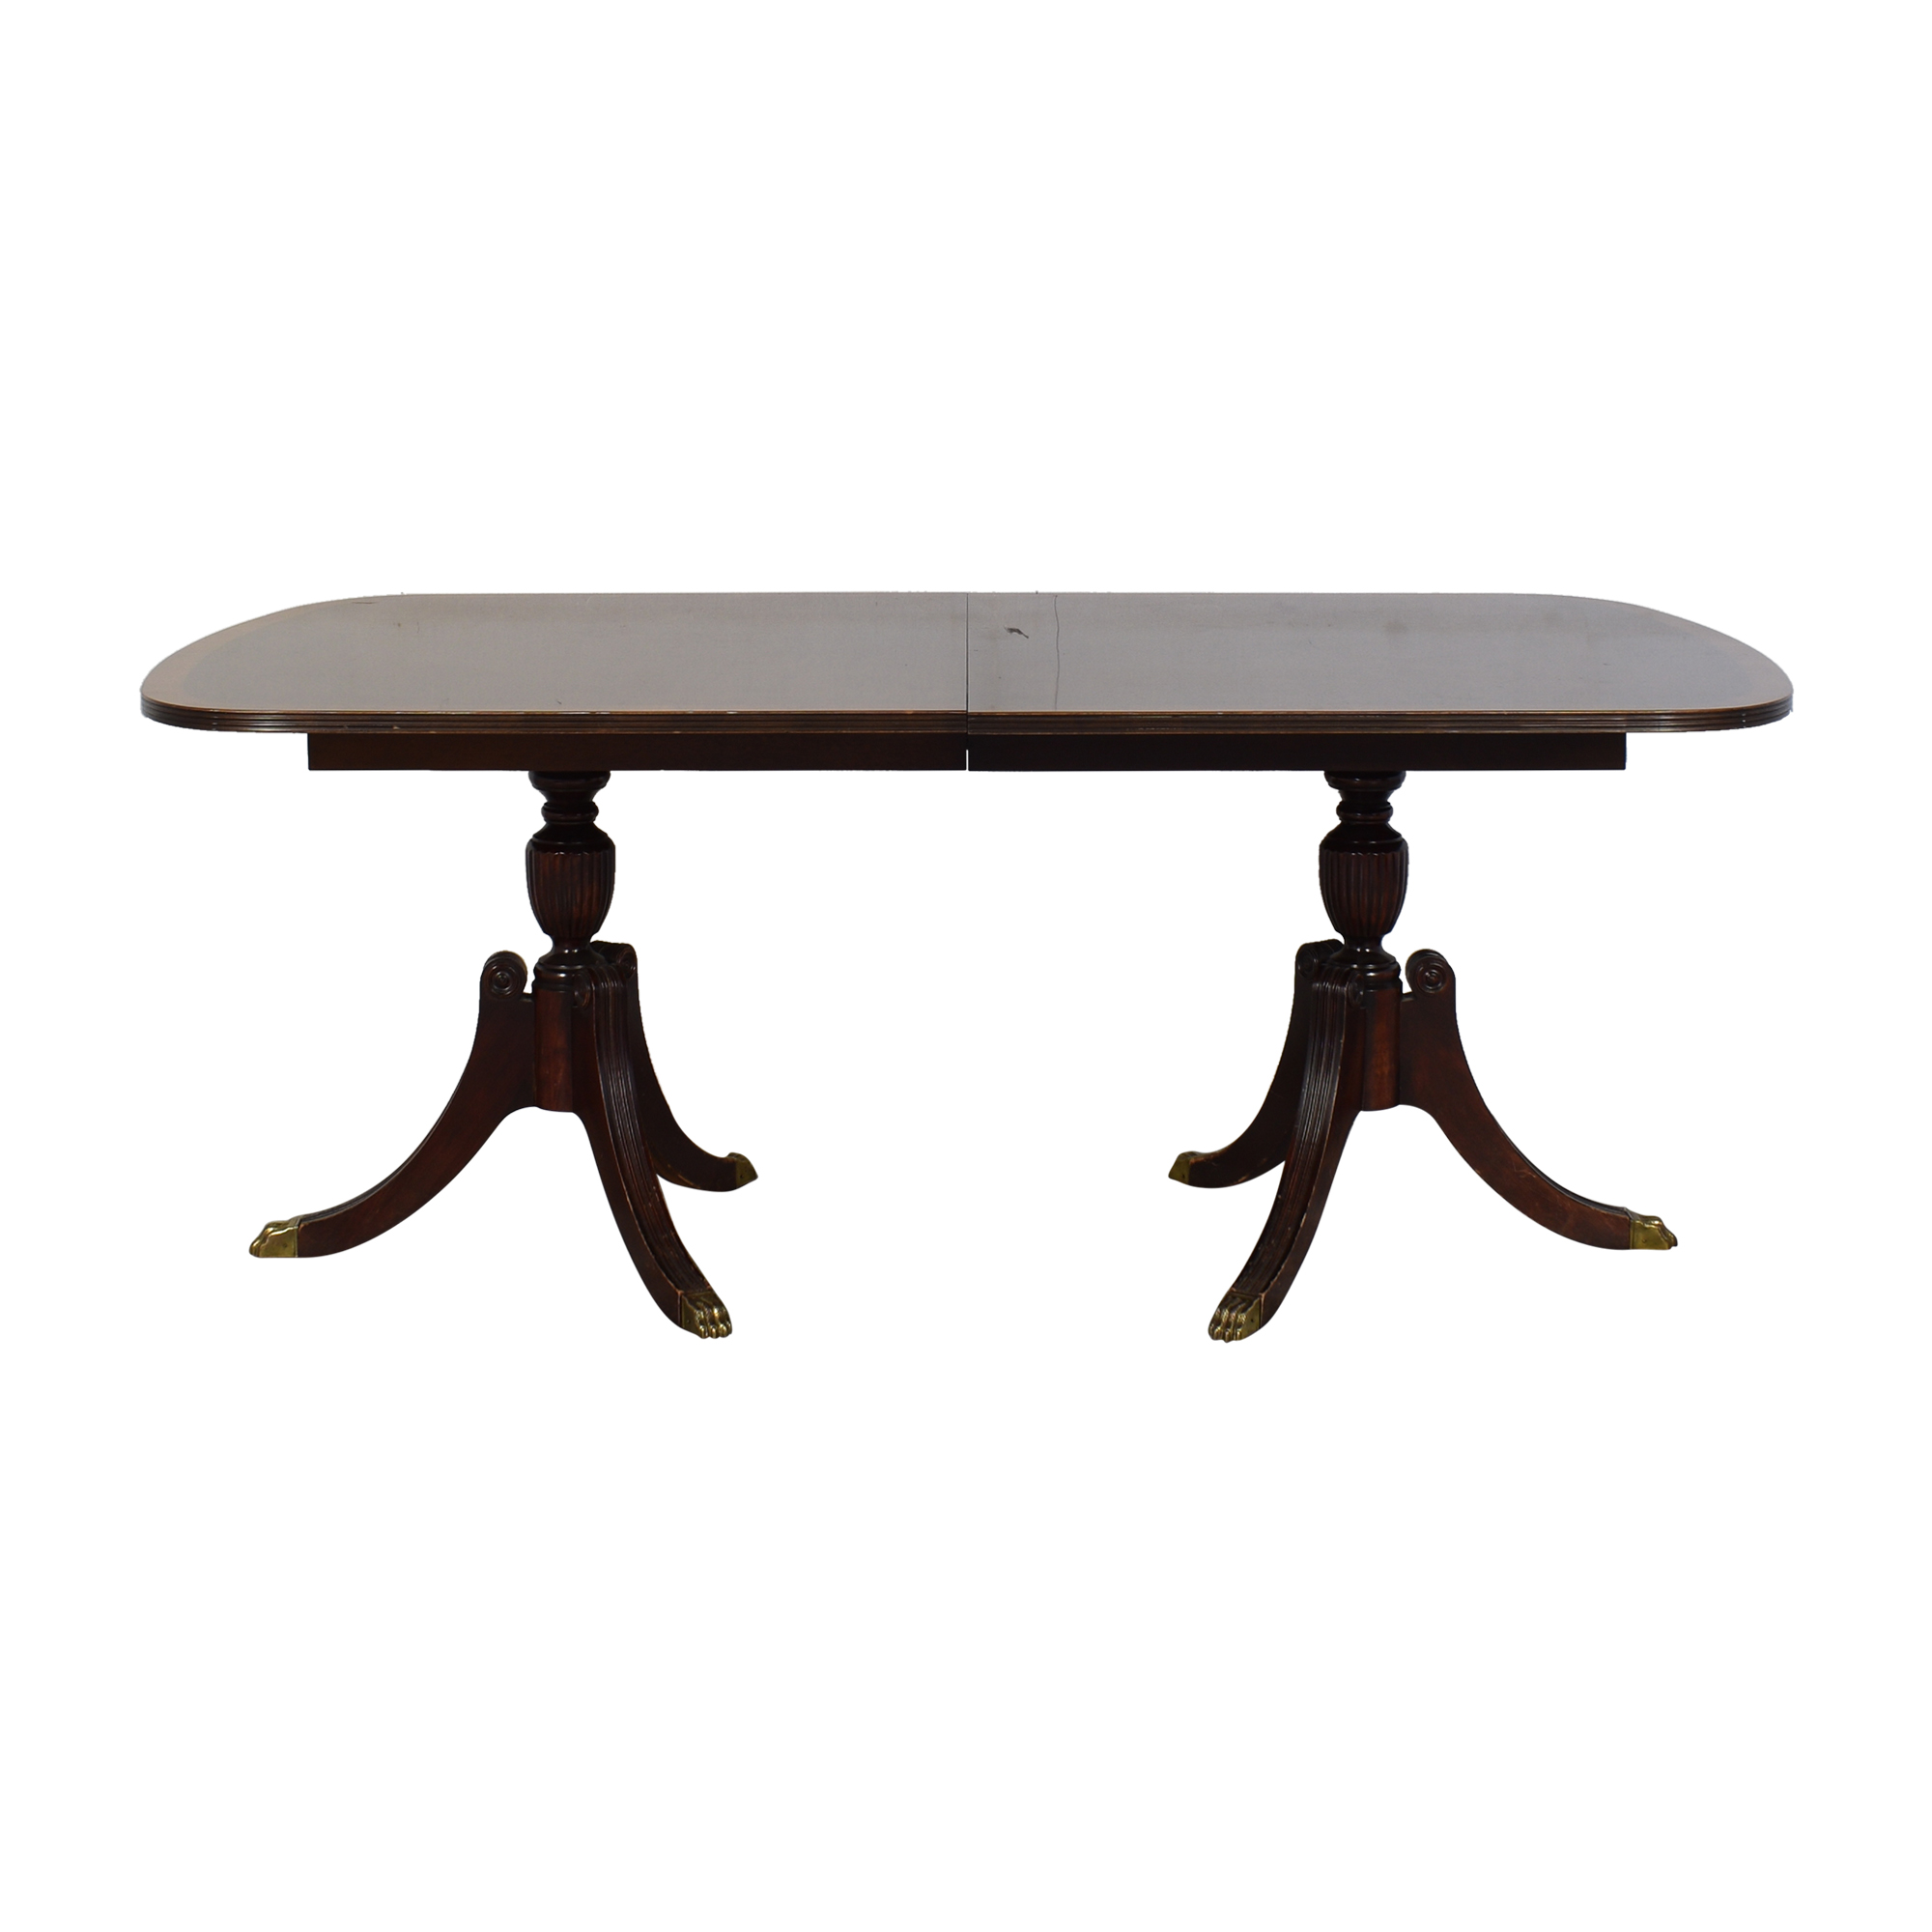 Extendable Dining Room Table second hand